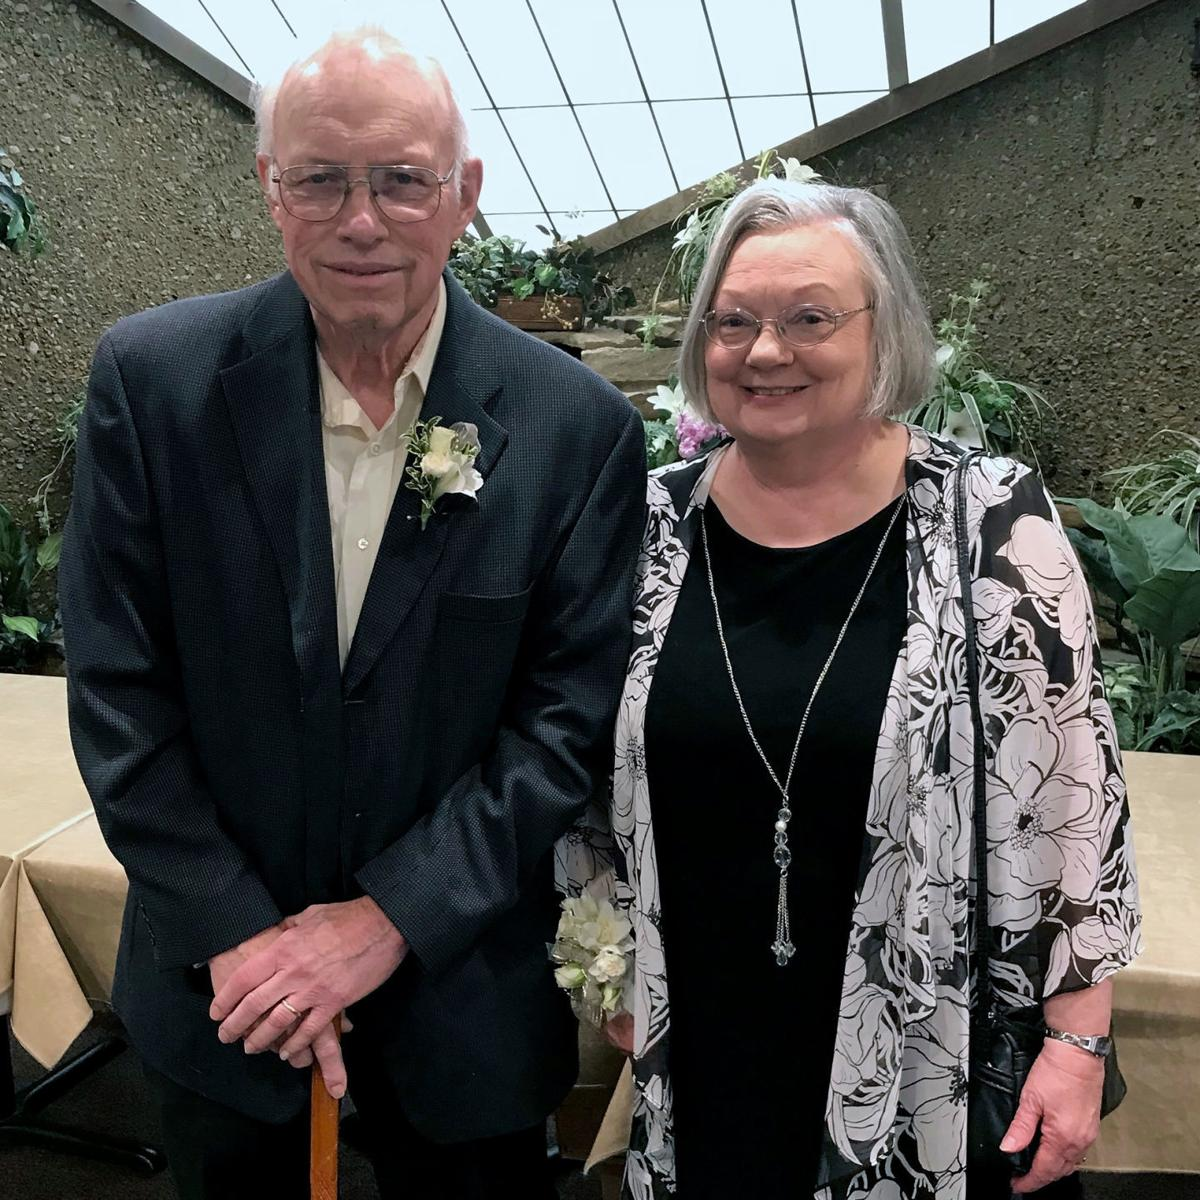 Jim and Jane Smith